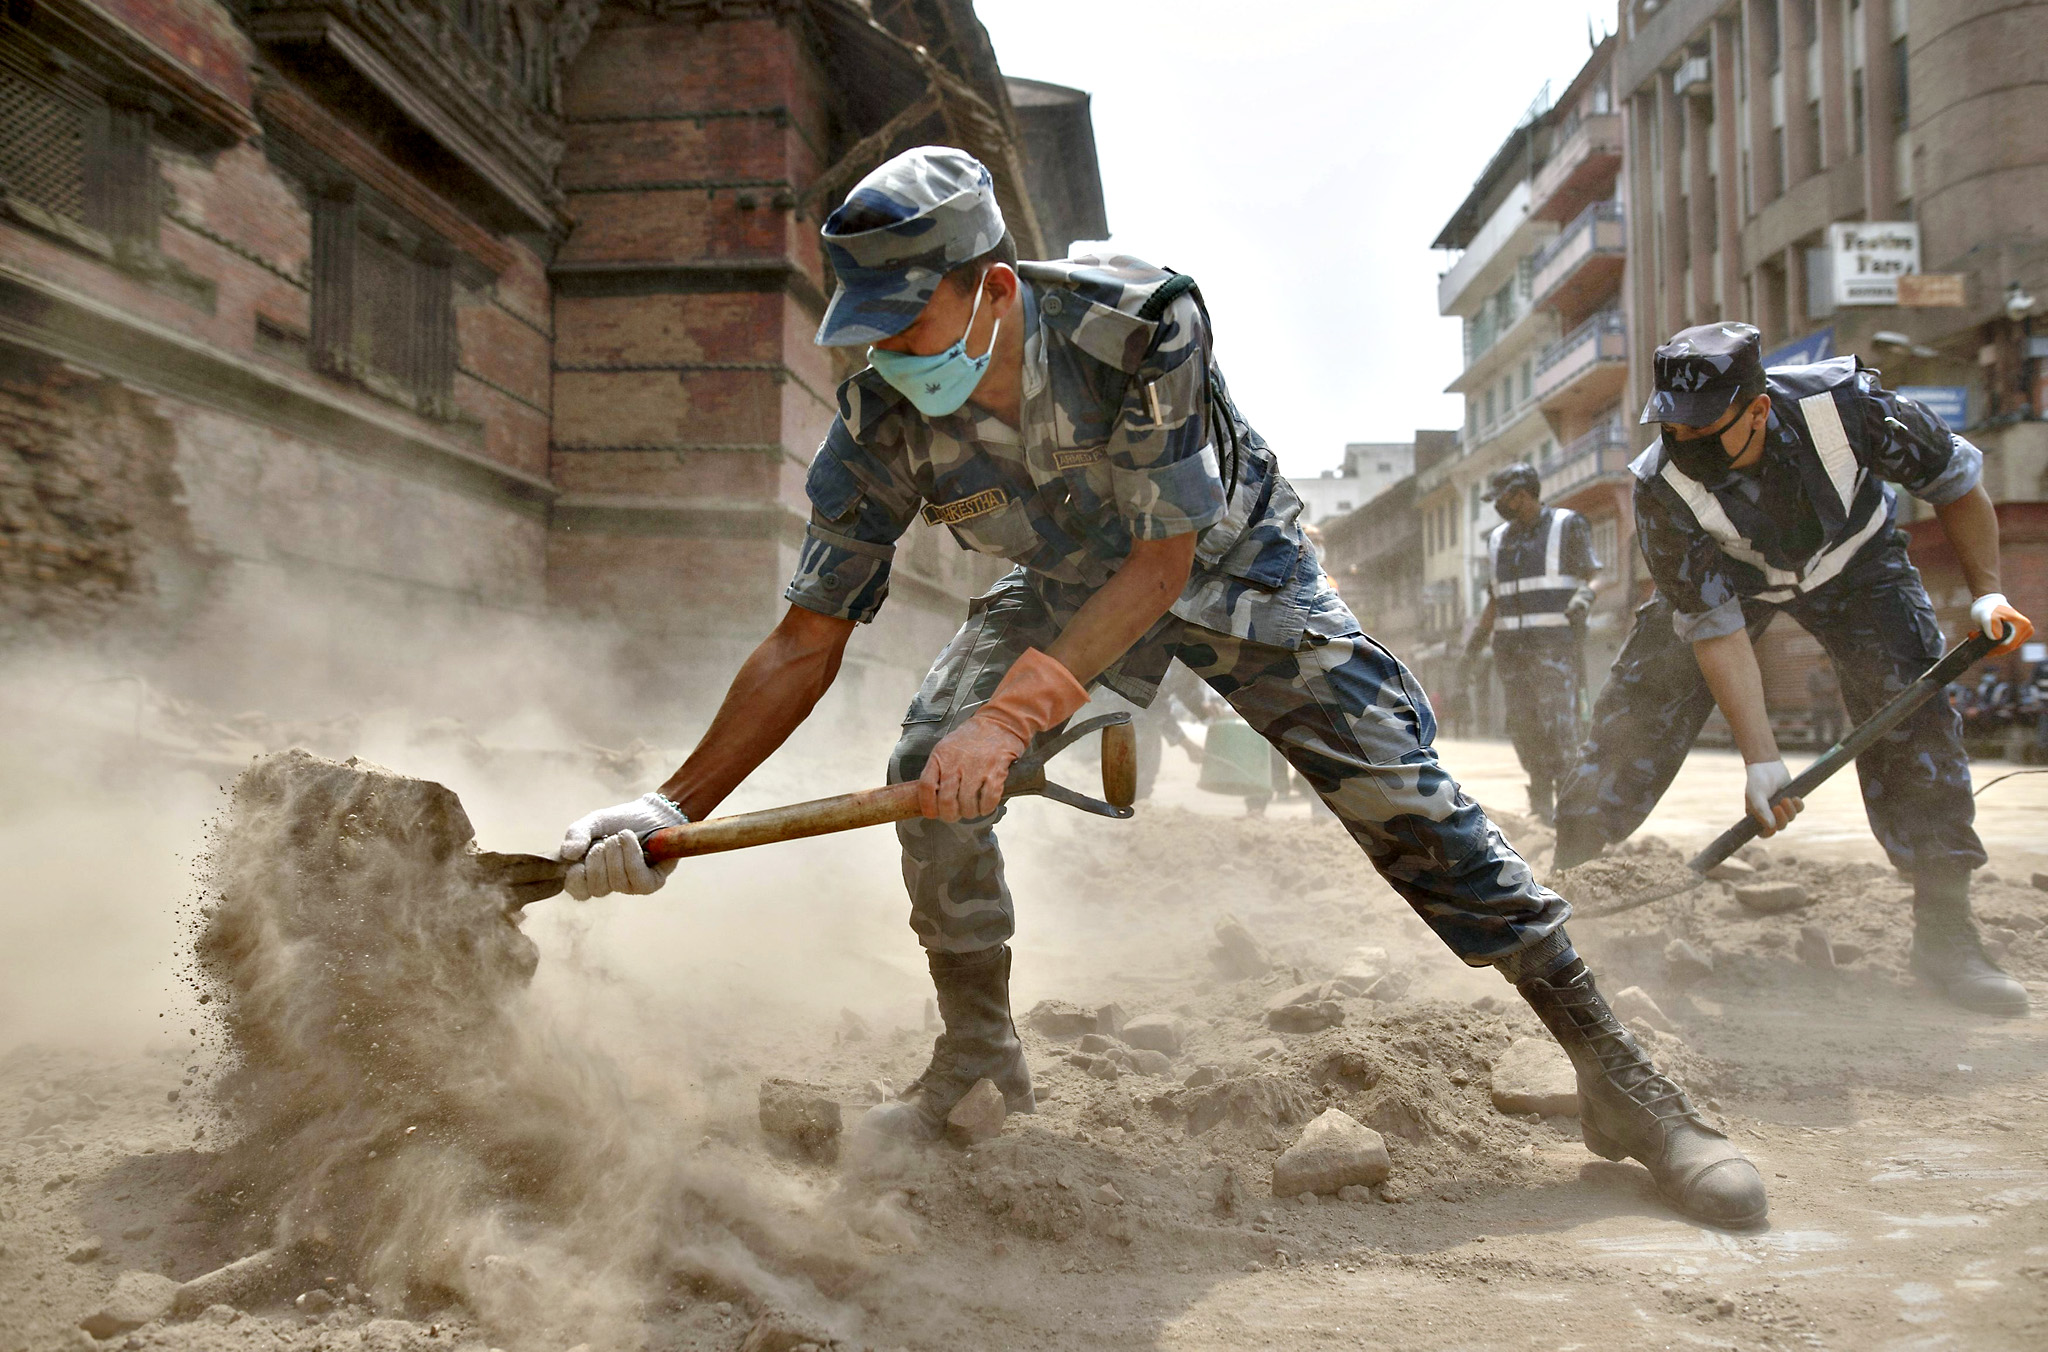 Nepal military personnel work to clear rubble along the street of Bashantapur Durbar Square, a UNESCO world heritage site, after the April 25 earthquake at Kathmandu in Nepal, May 7, 2015.